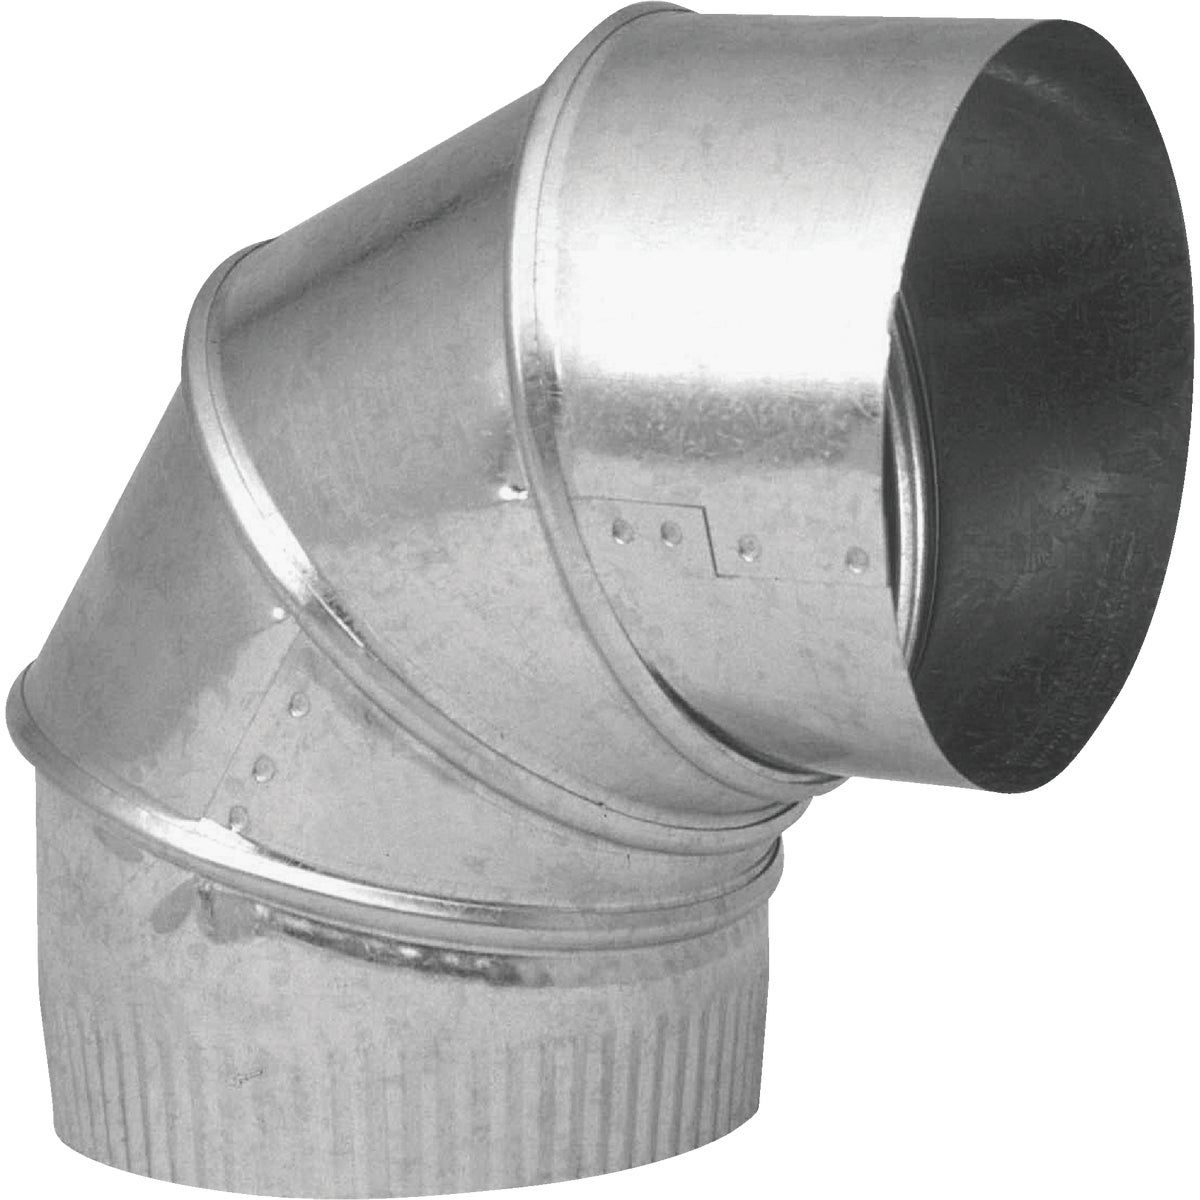 "7"" 24GA GALV ADJ ELBOW - GV0298-C by Imperial Mfg Group"